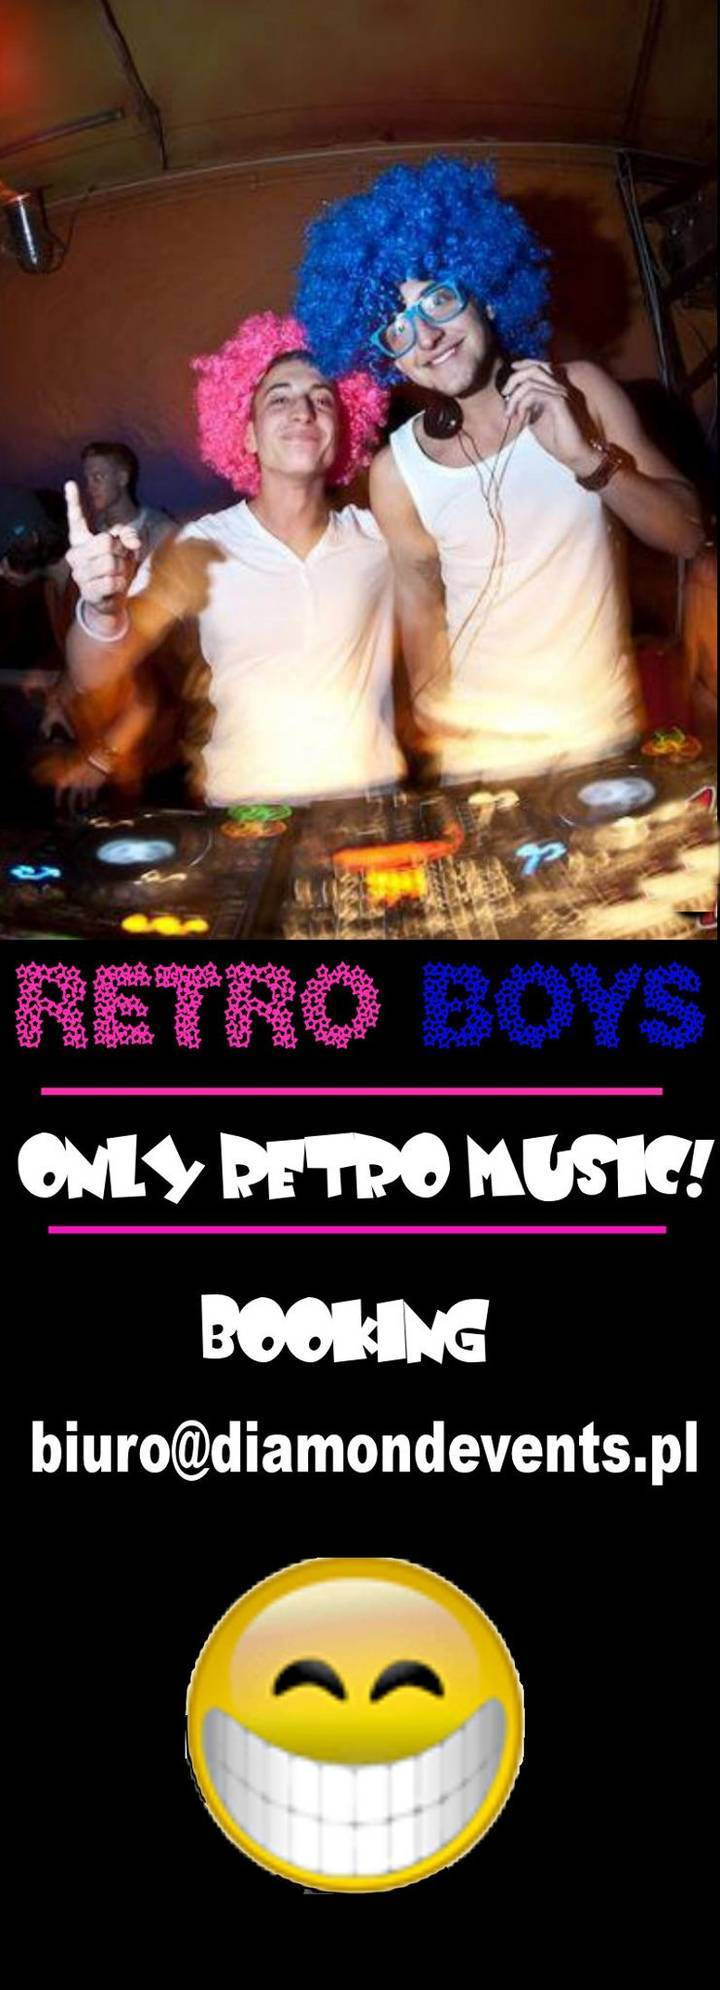 Retro Boys Tour Dates